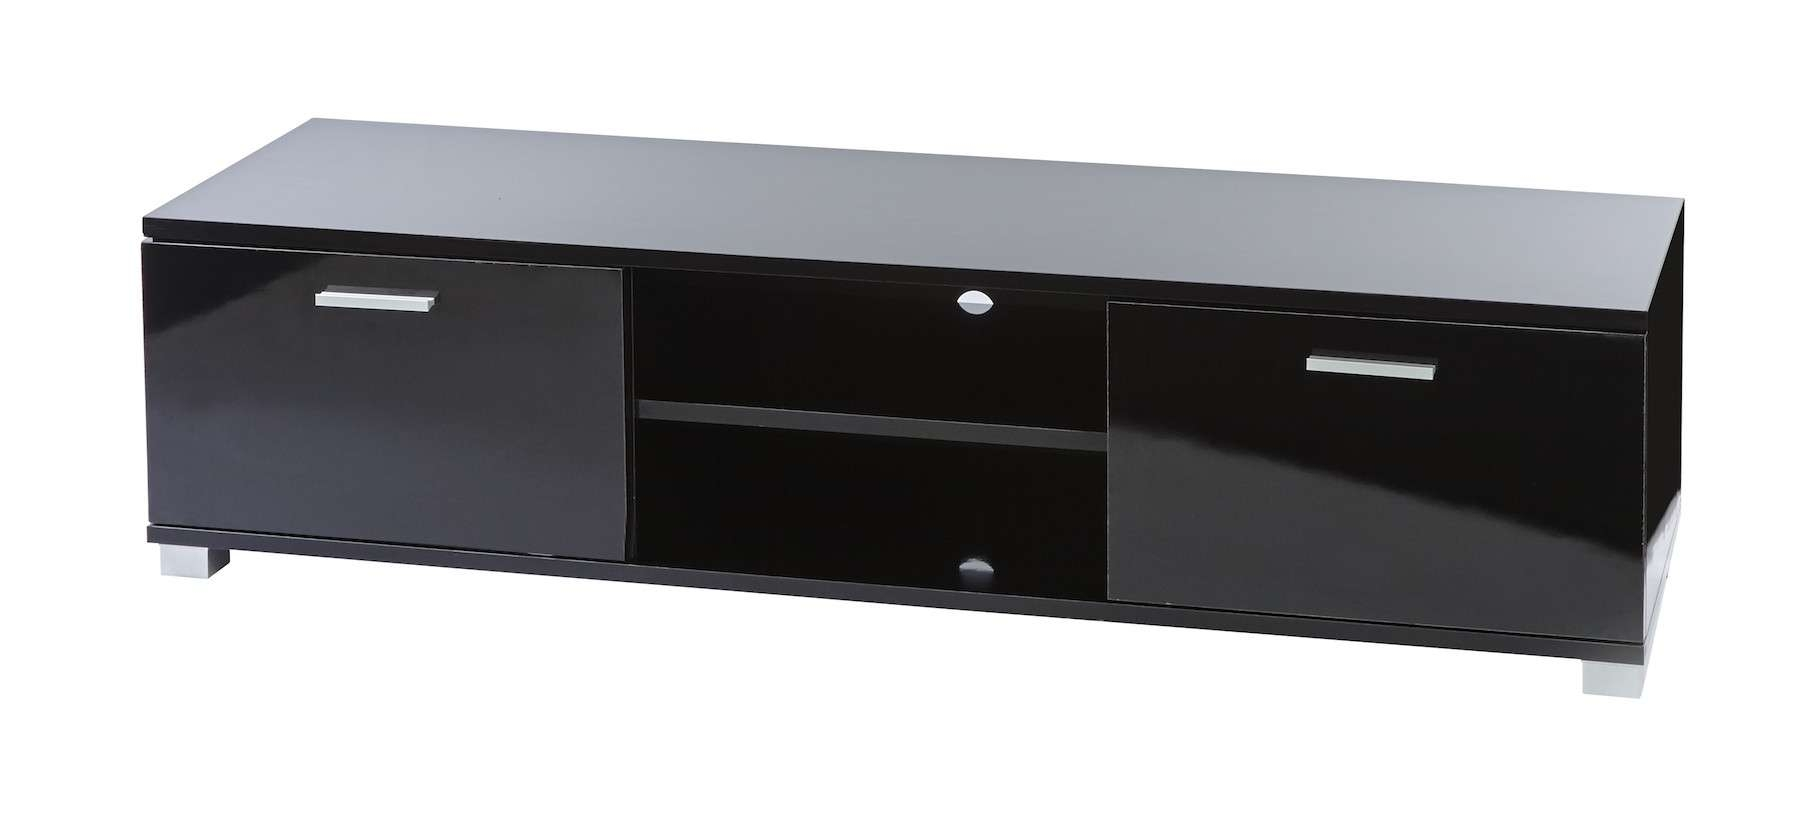 Sd Ht01 Black Gloss Tv Cabinet For Up To 60 Inch Lcd Led Screens Pertaining To Black Gloss Tv Cabinets (View 10 of 20)